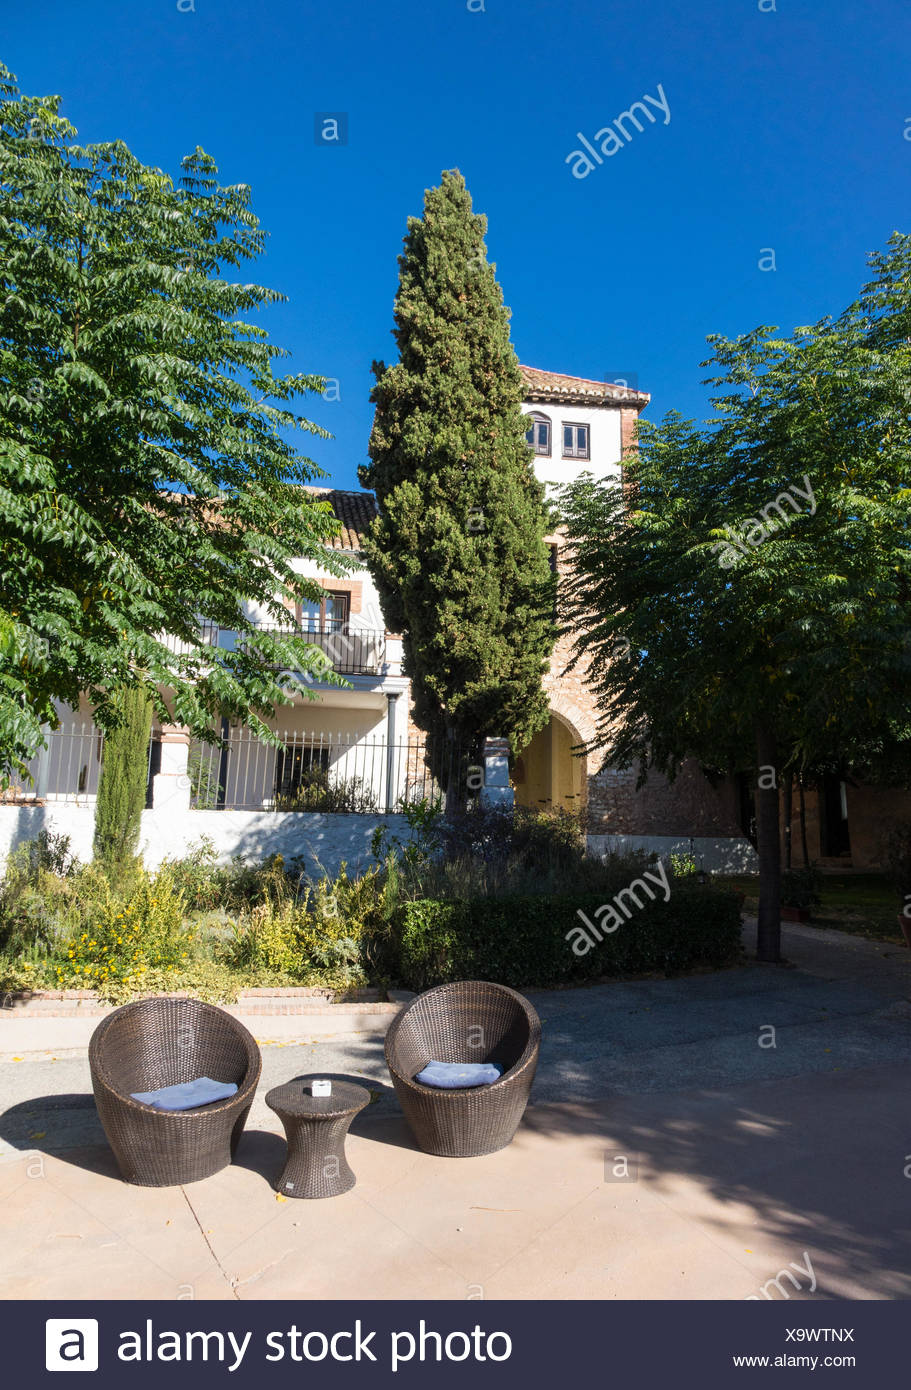 Warm courtyard with table and chairs in Spain Stock Photo